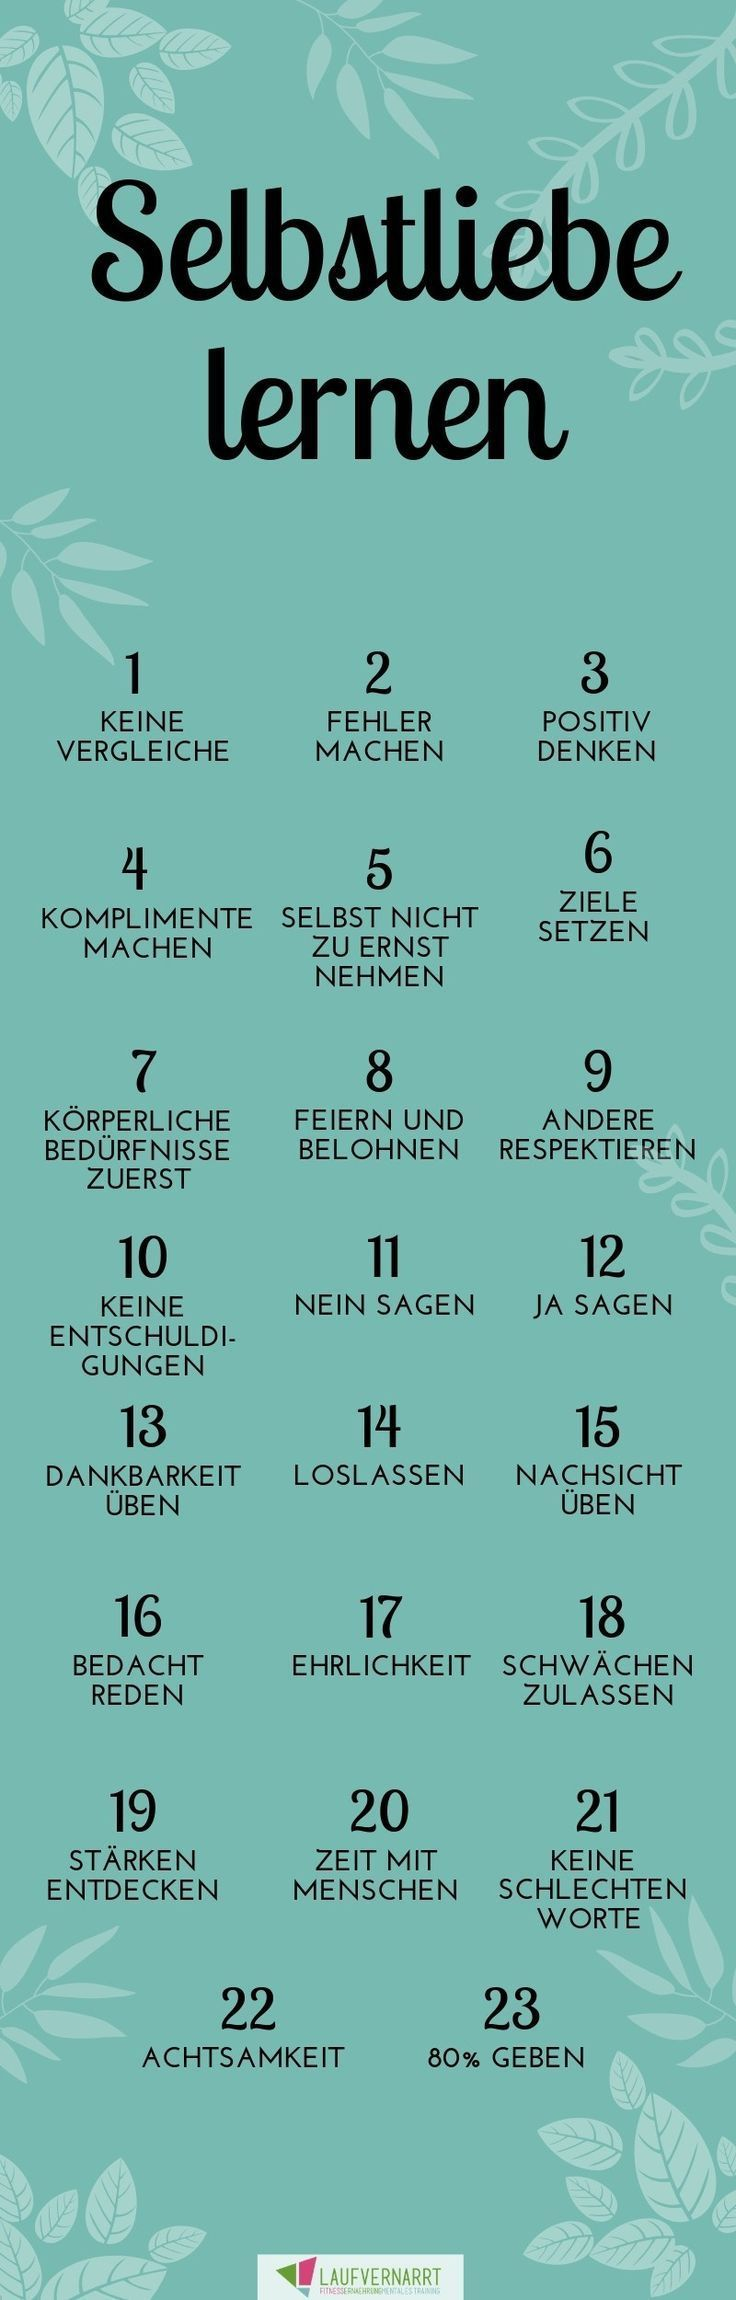 Die Selbstliebe - ein kompletter Guide in 23 Punkten Inspirational Quotes inspirational fitness quot...